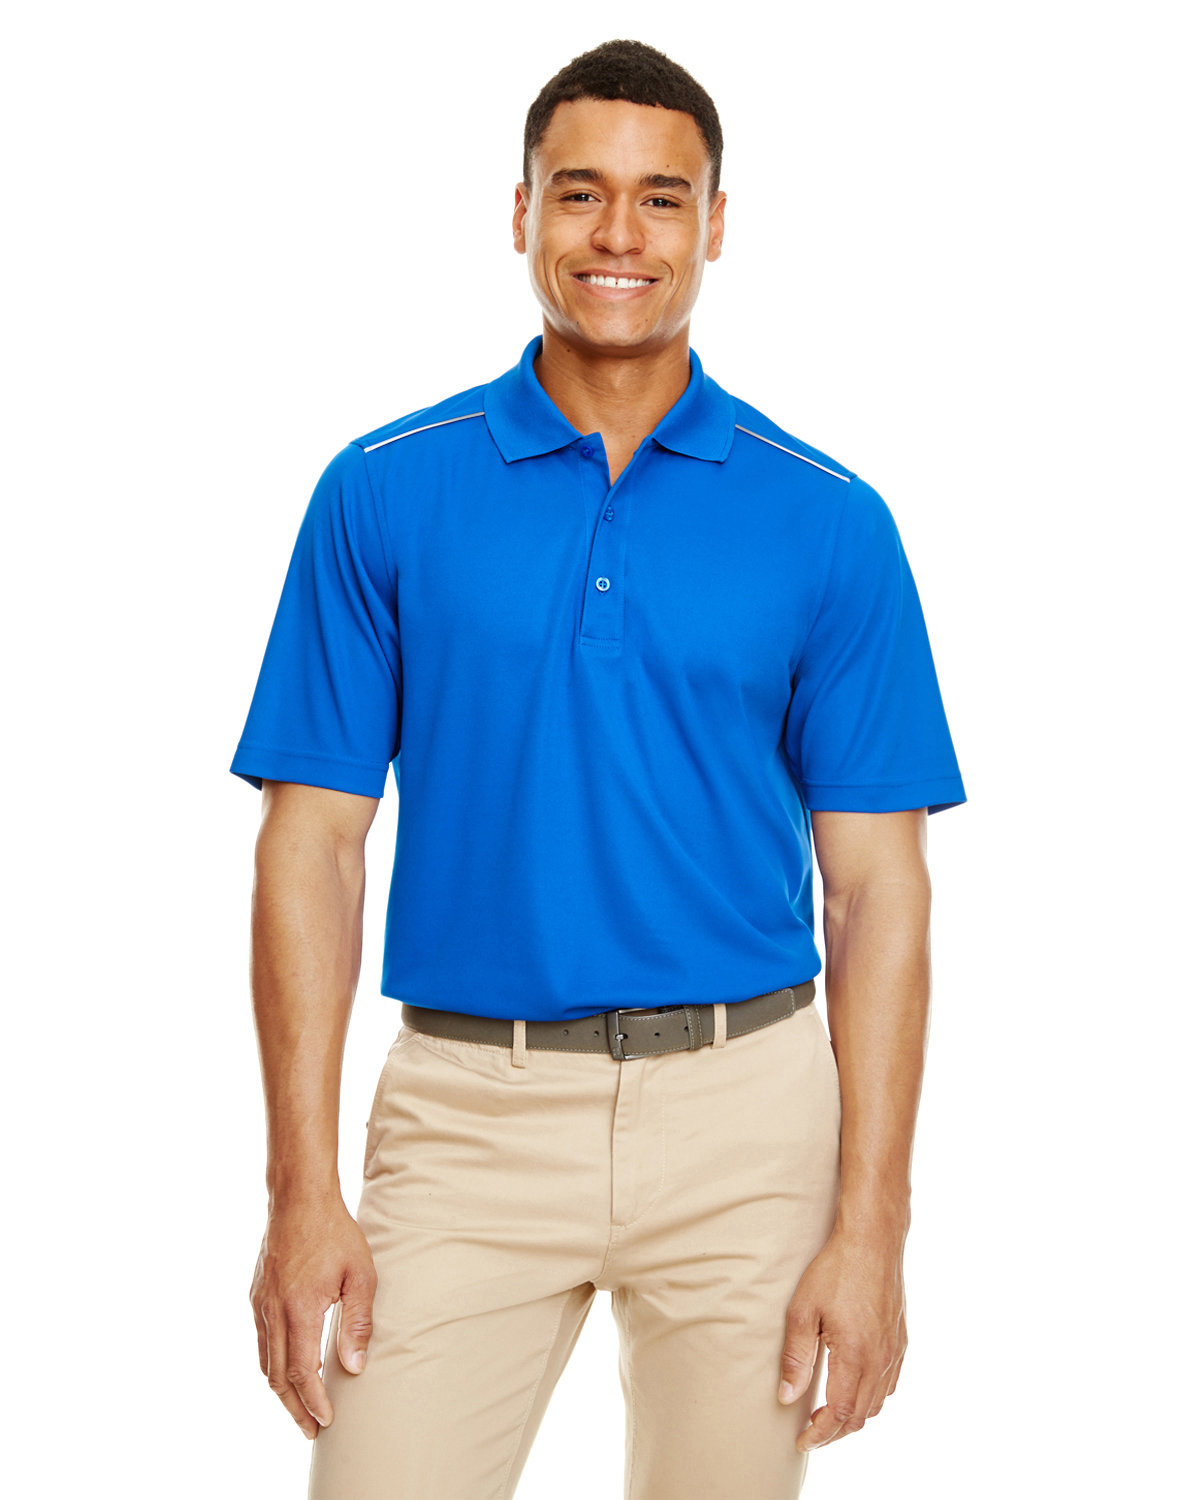 Core 365 Men's Radiant Performance Piqué Polo withReflective Piping TRUE ROYAL